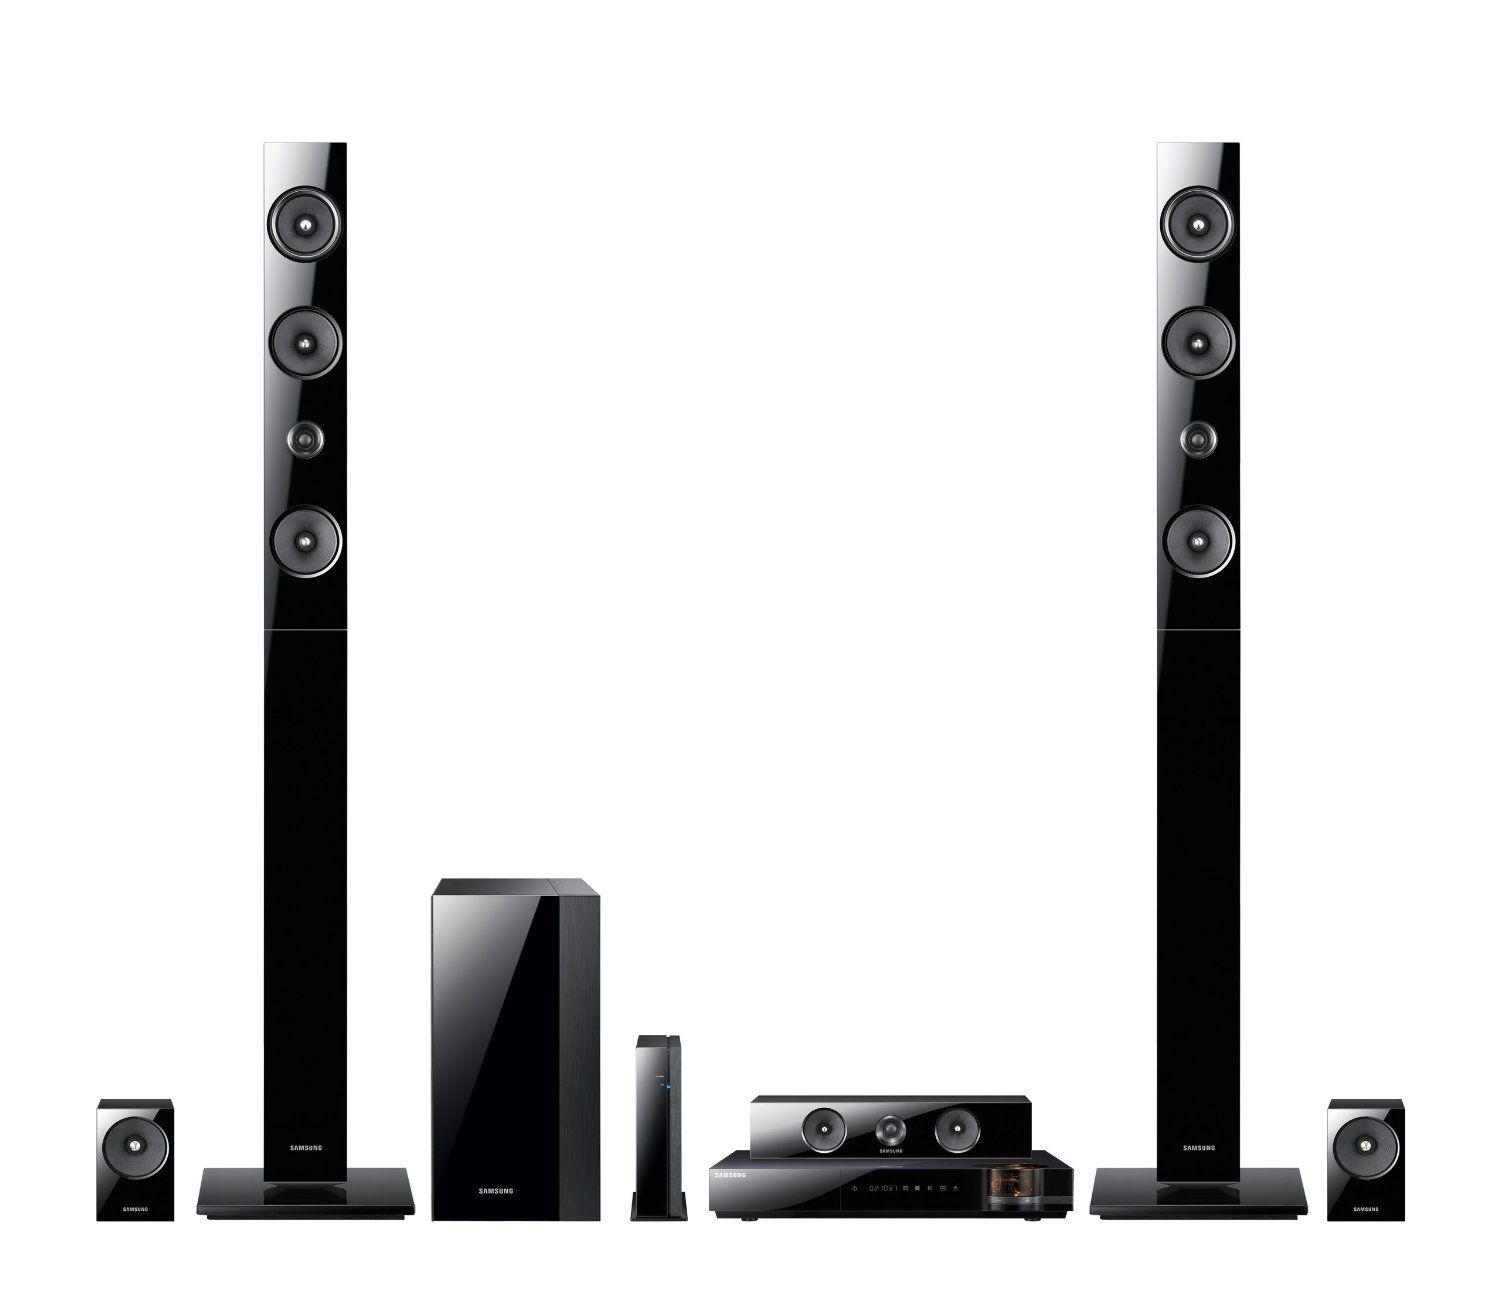 samsung ht e6730w blu ray home theater system review. Black Bedroom Furniture Sets. Home Design Ideas